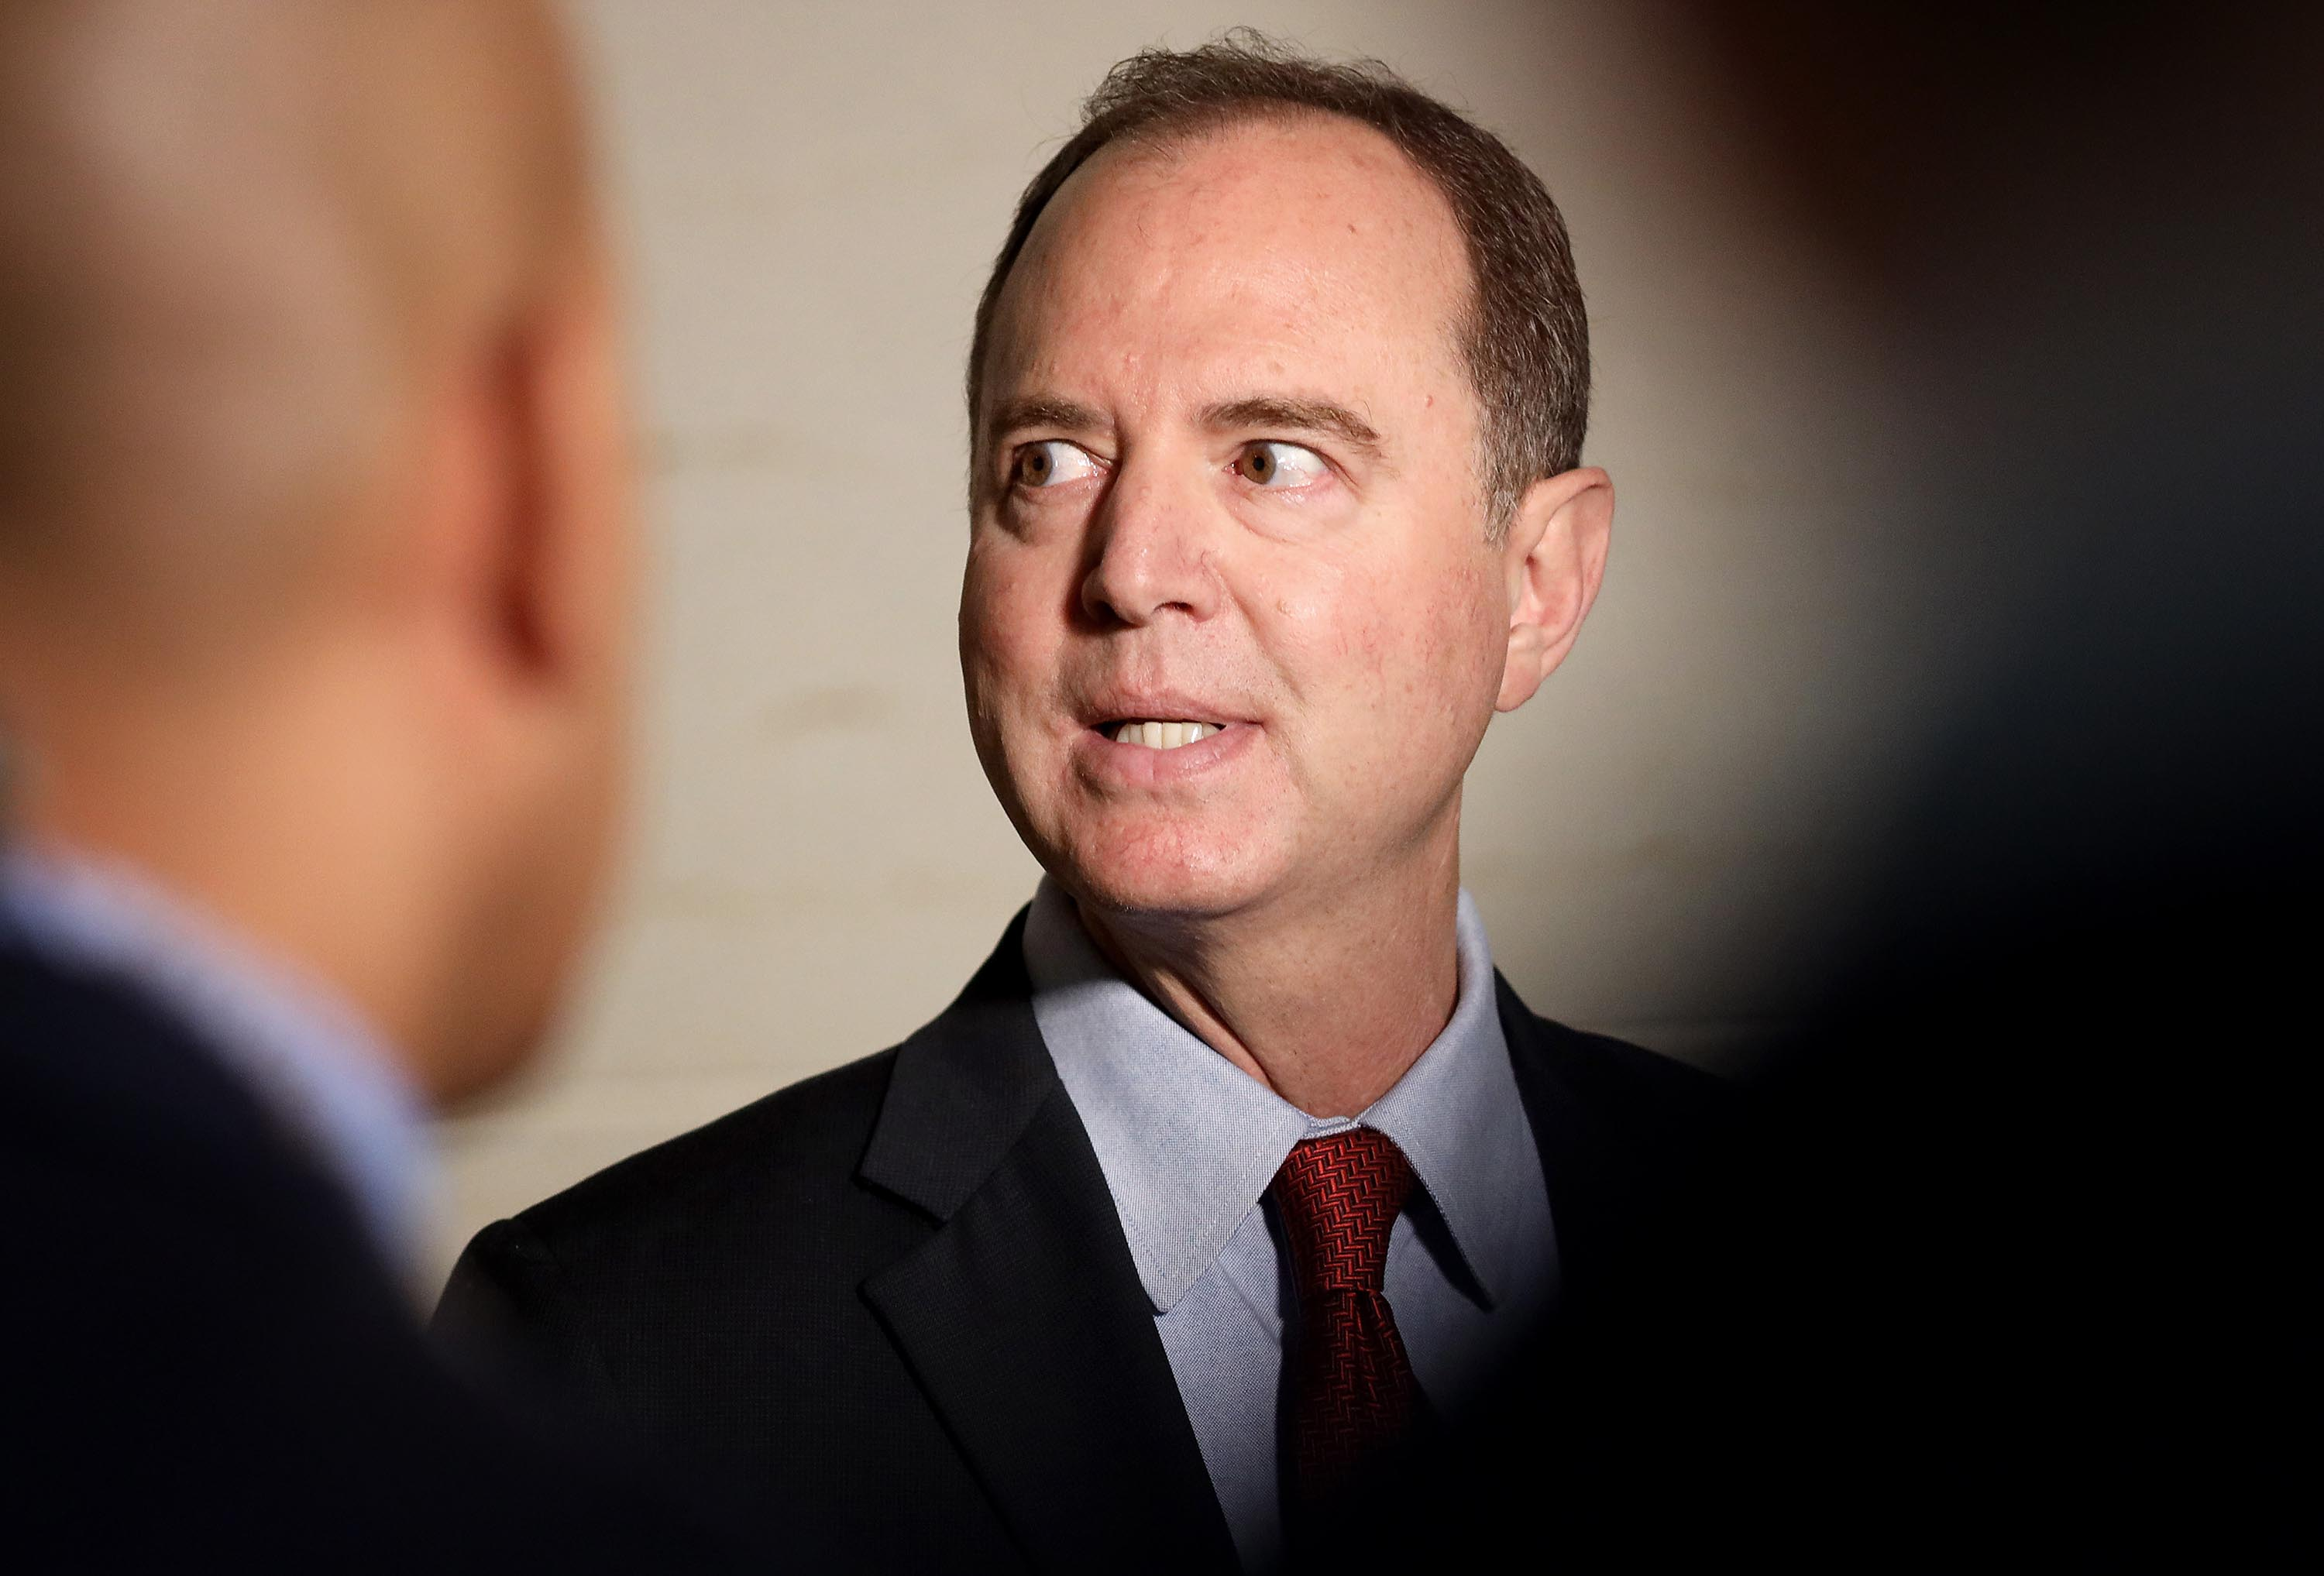 House Intelligence Committee Chair Adam Schiff speaks at a press conference at the US Capitol on Tuesday, October 8 in Washington.